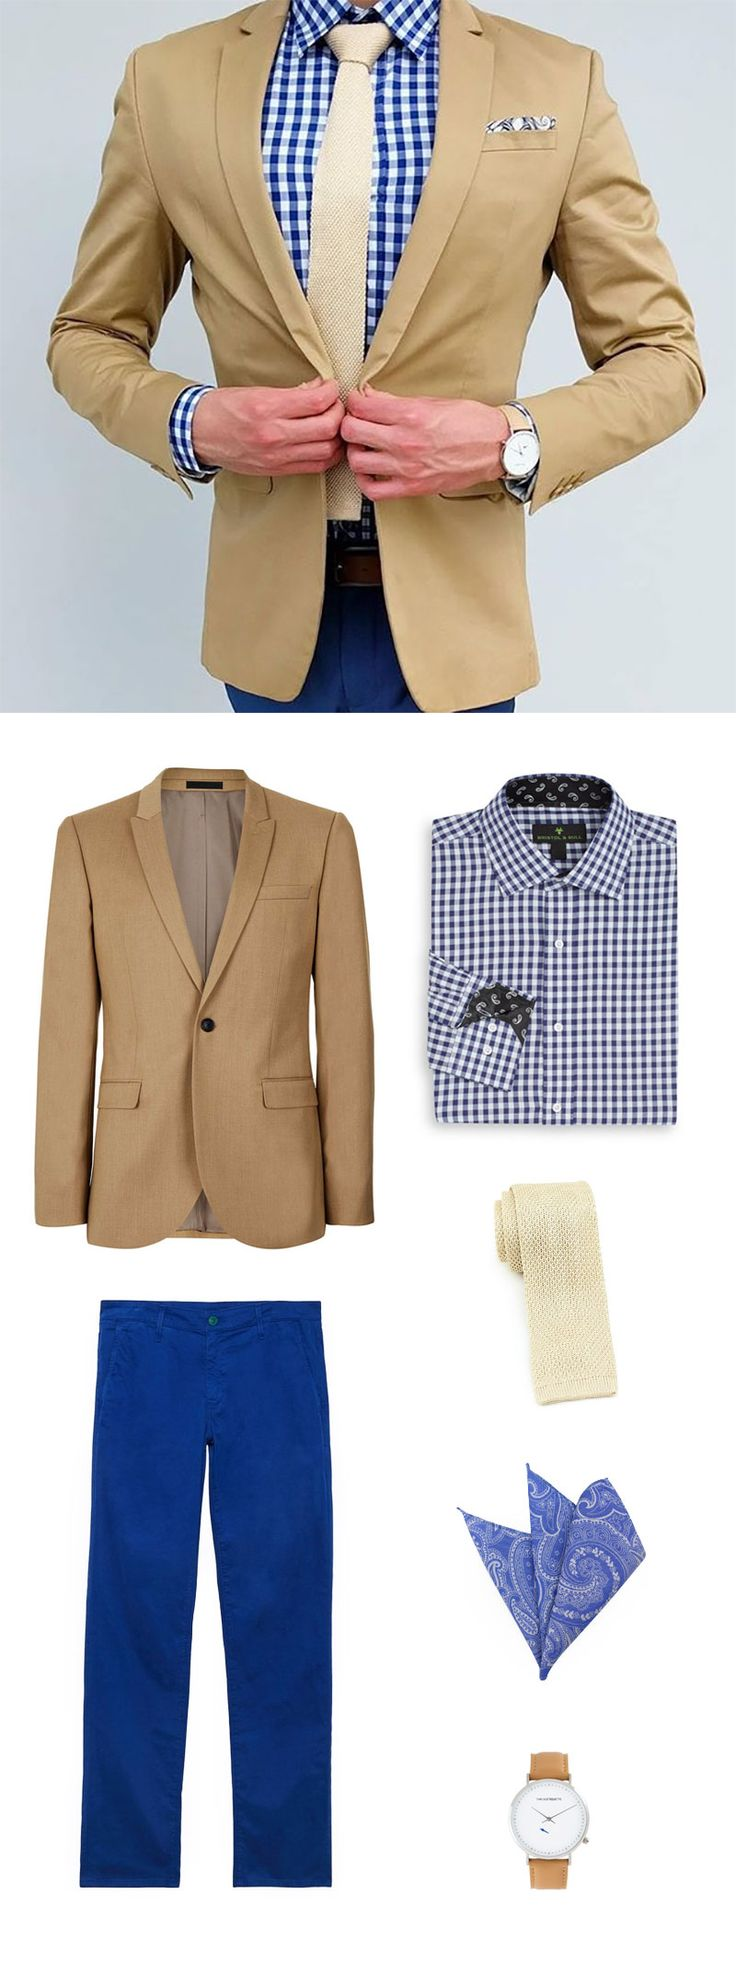 Knitted Neckties - How to Wear Knitted Ties | Tie-a-Tie.net